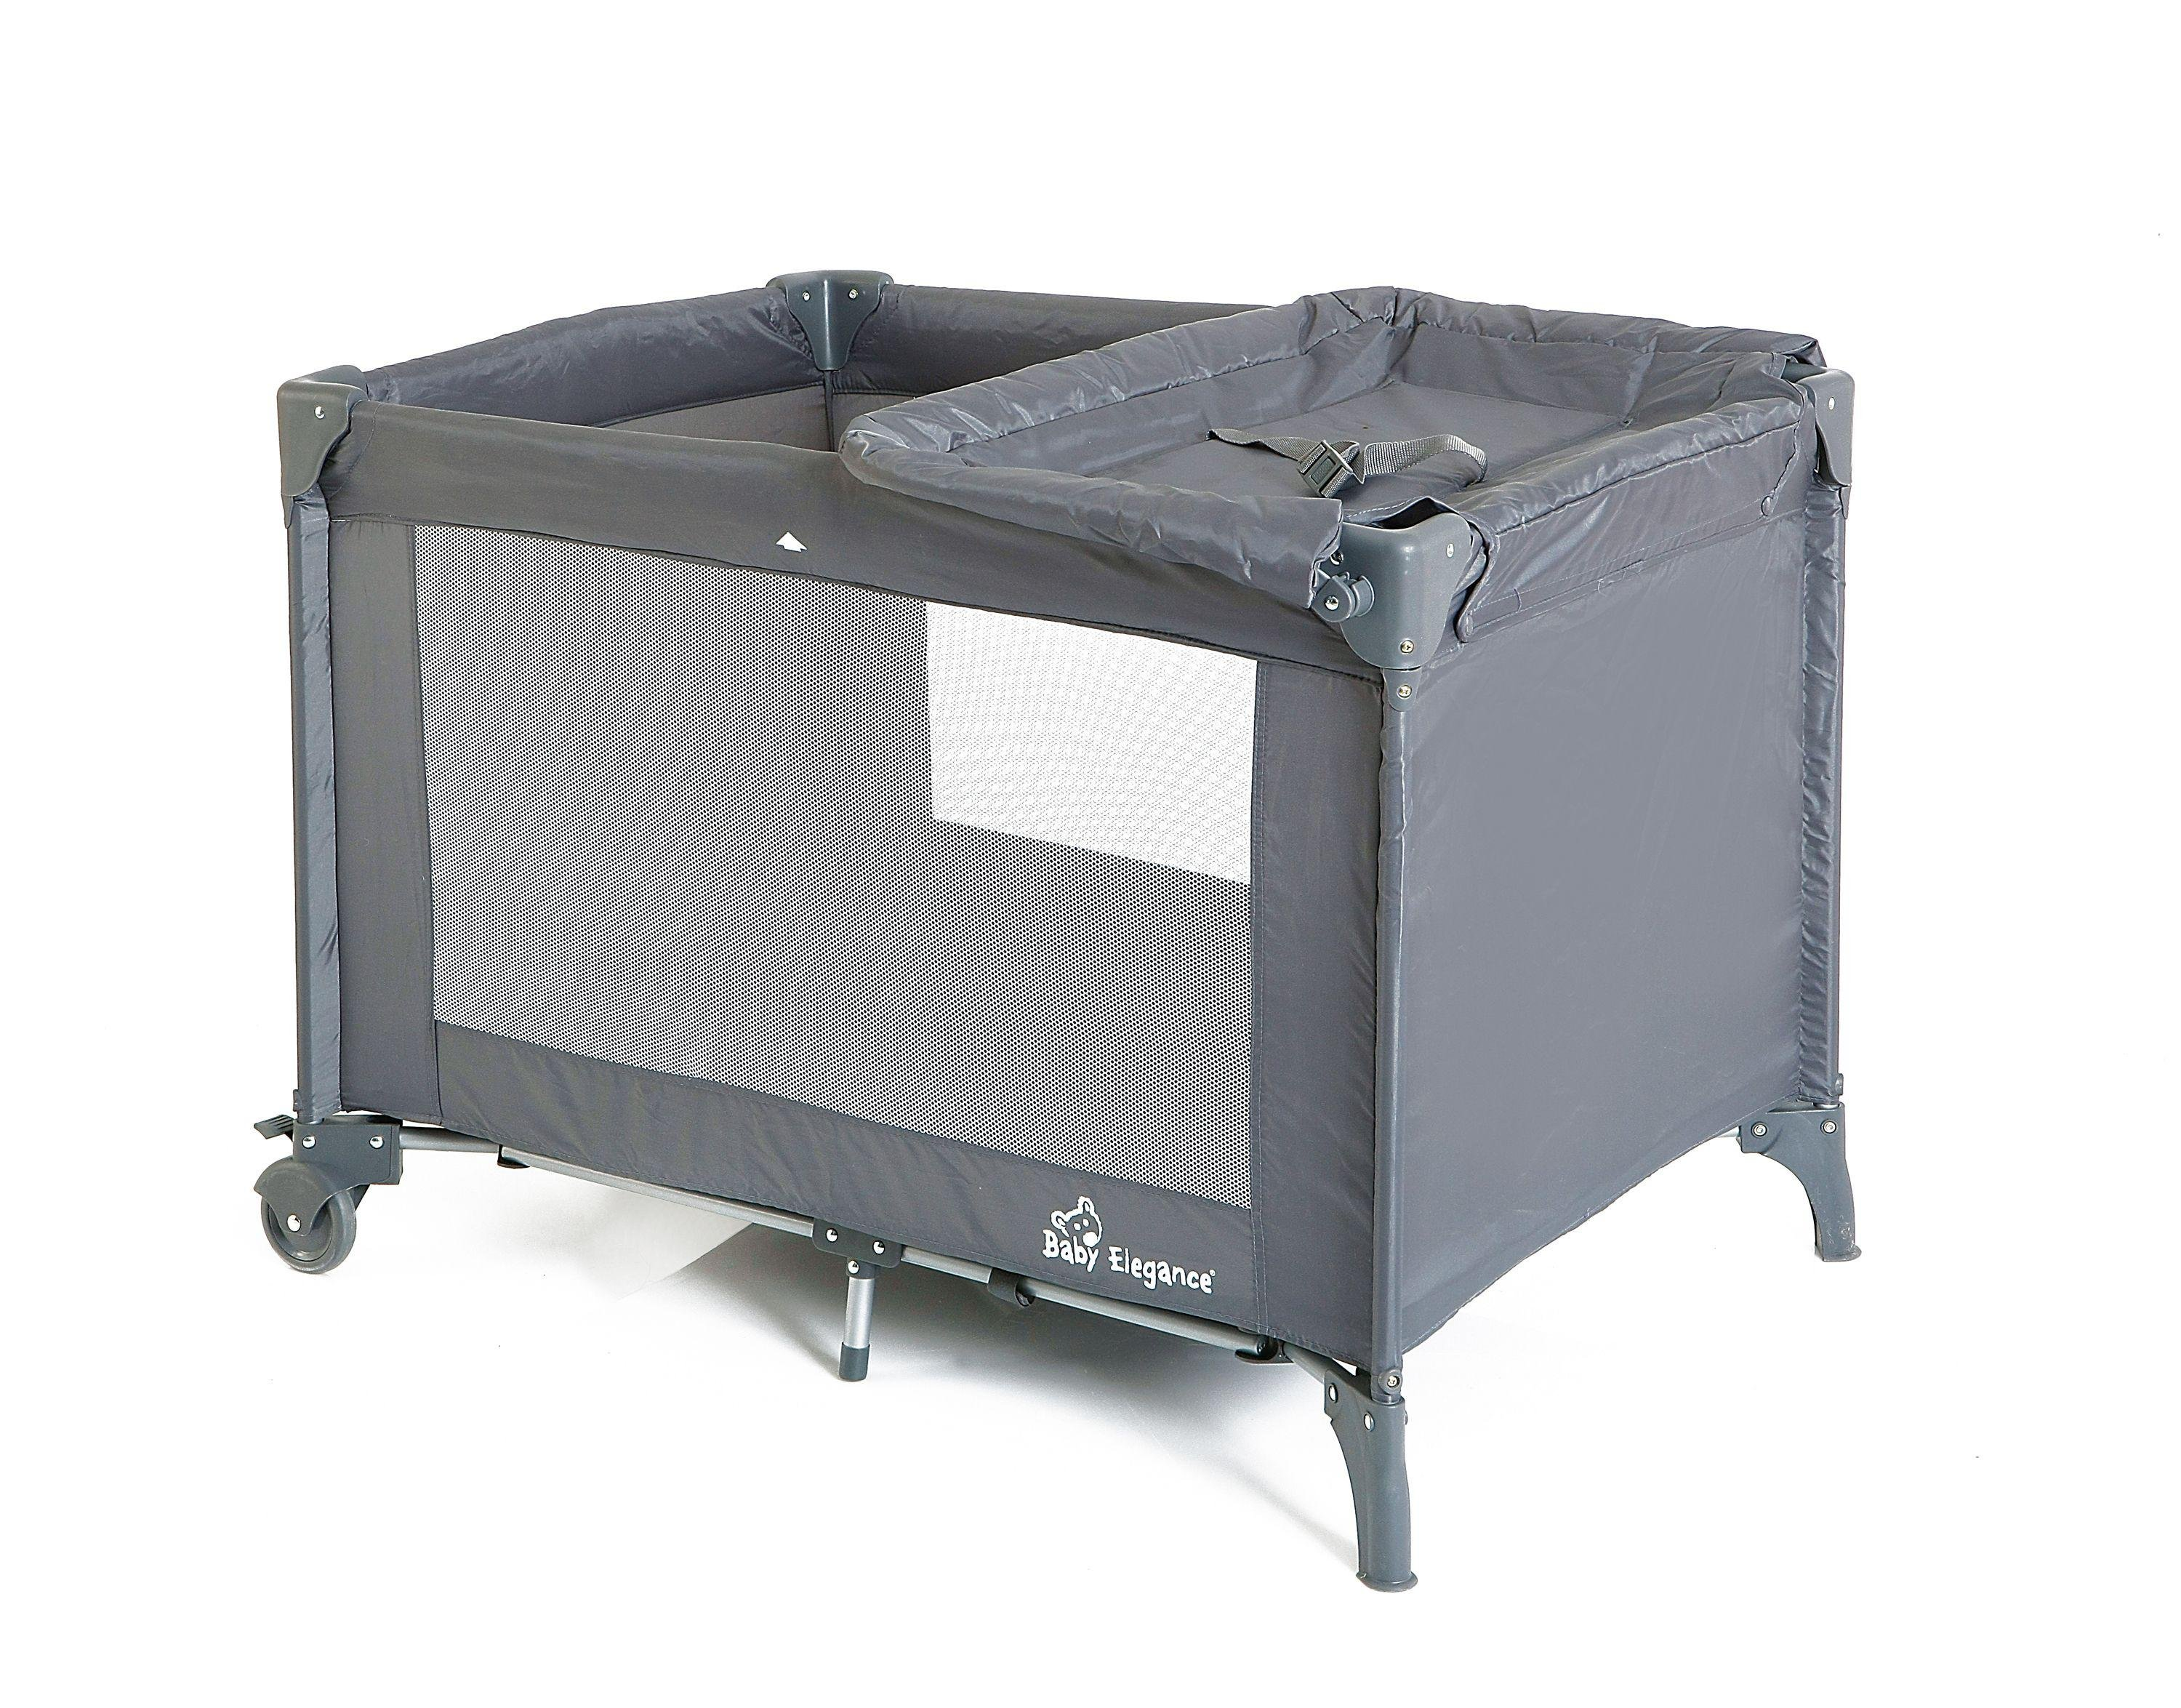 Image of Baby Elegance Double Layer Travel Cot.